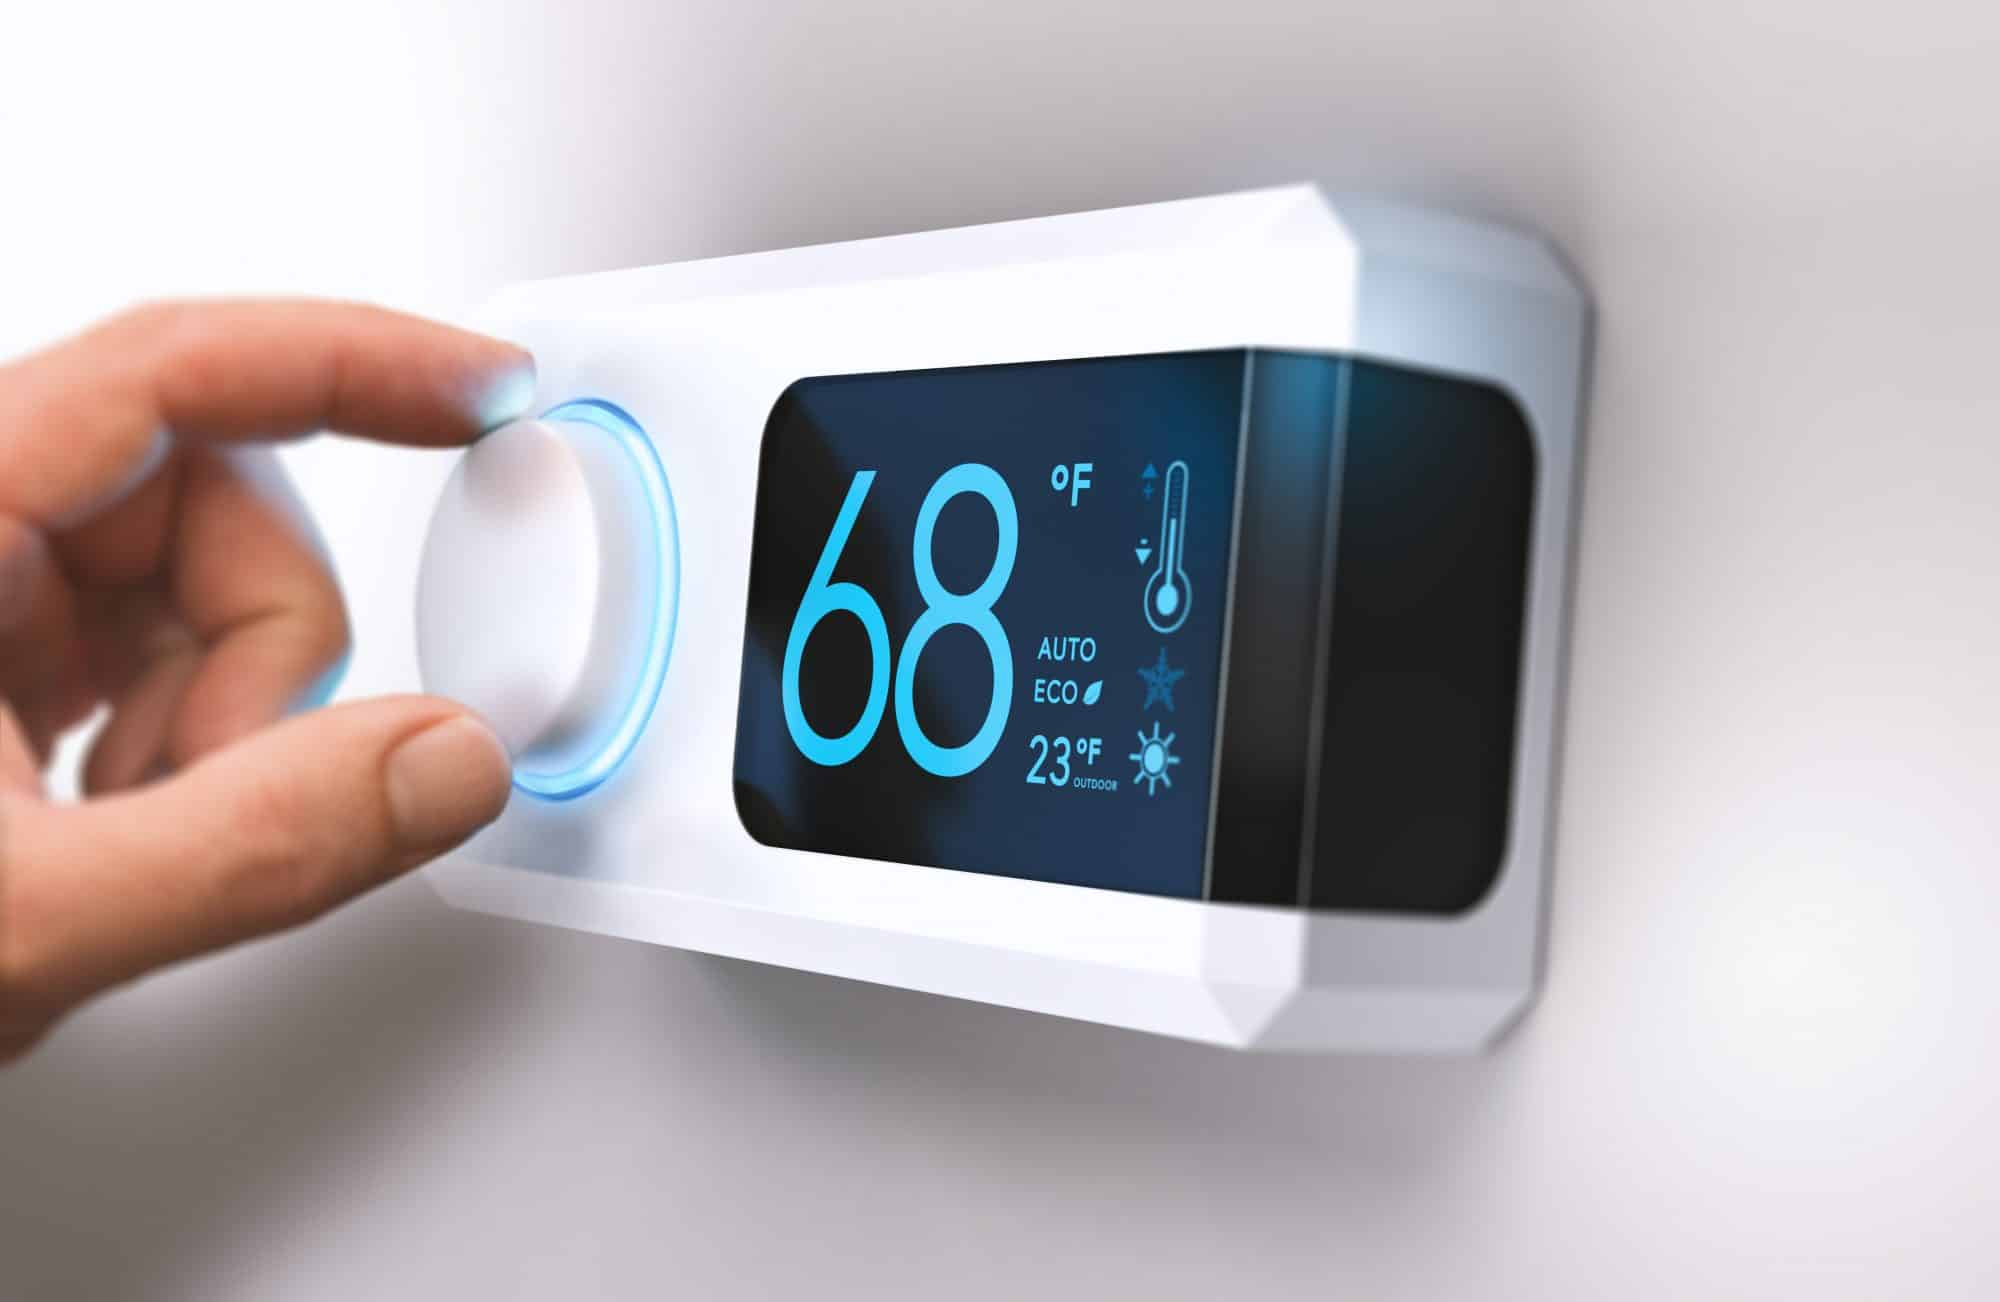 hand adjusting temperature on smart digital thermostat